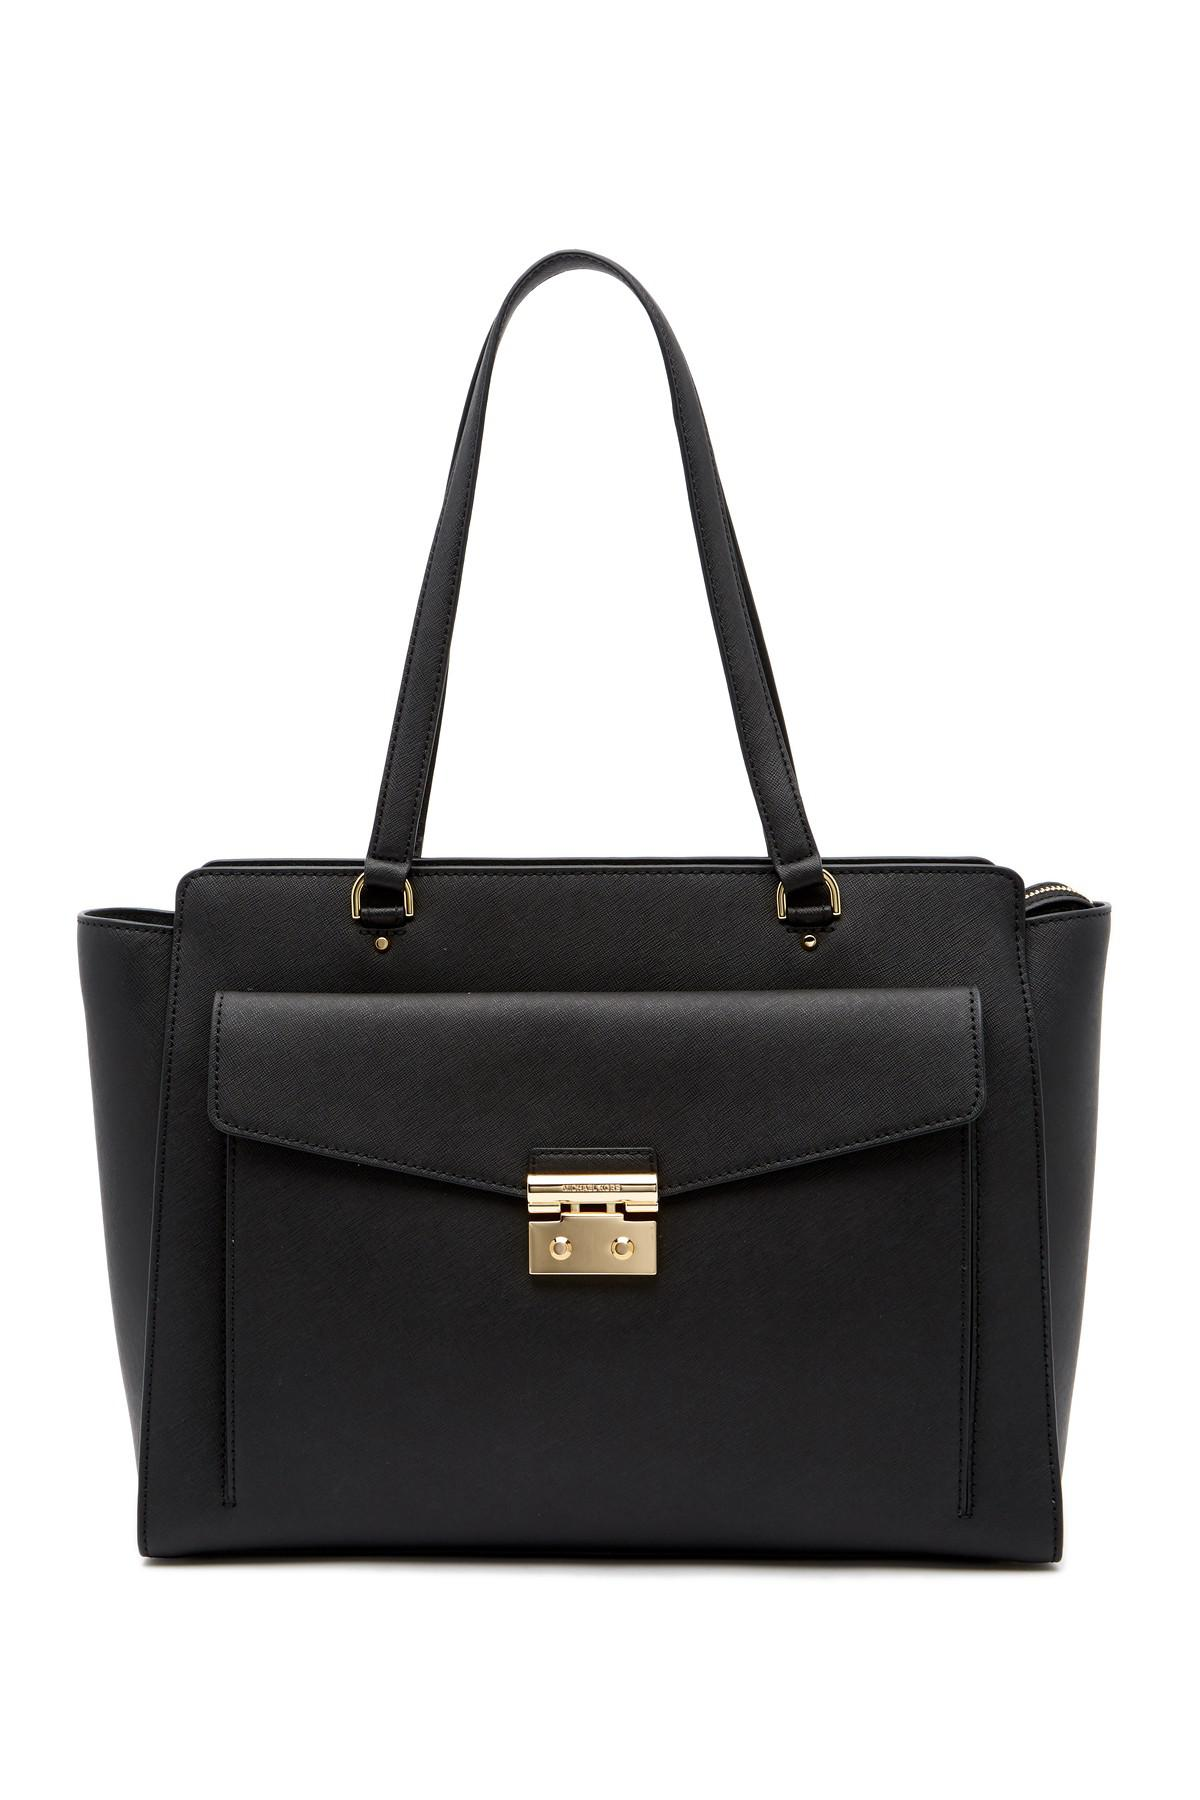 0f6331fa545e67 Lyst - MICHAEL Michael Kors Large Essex Leather Tote Bag in Black